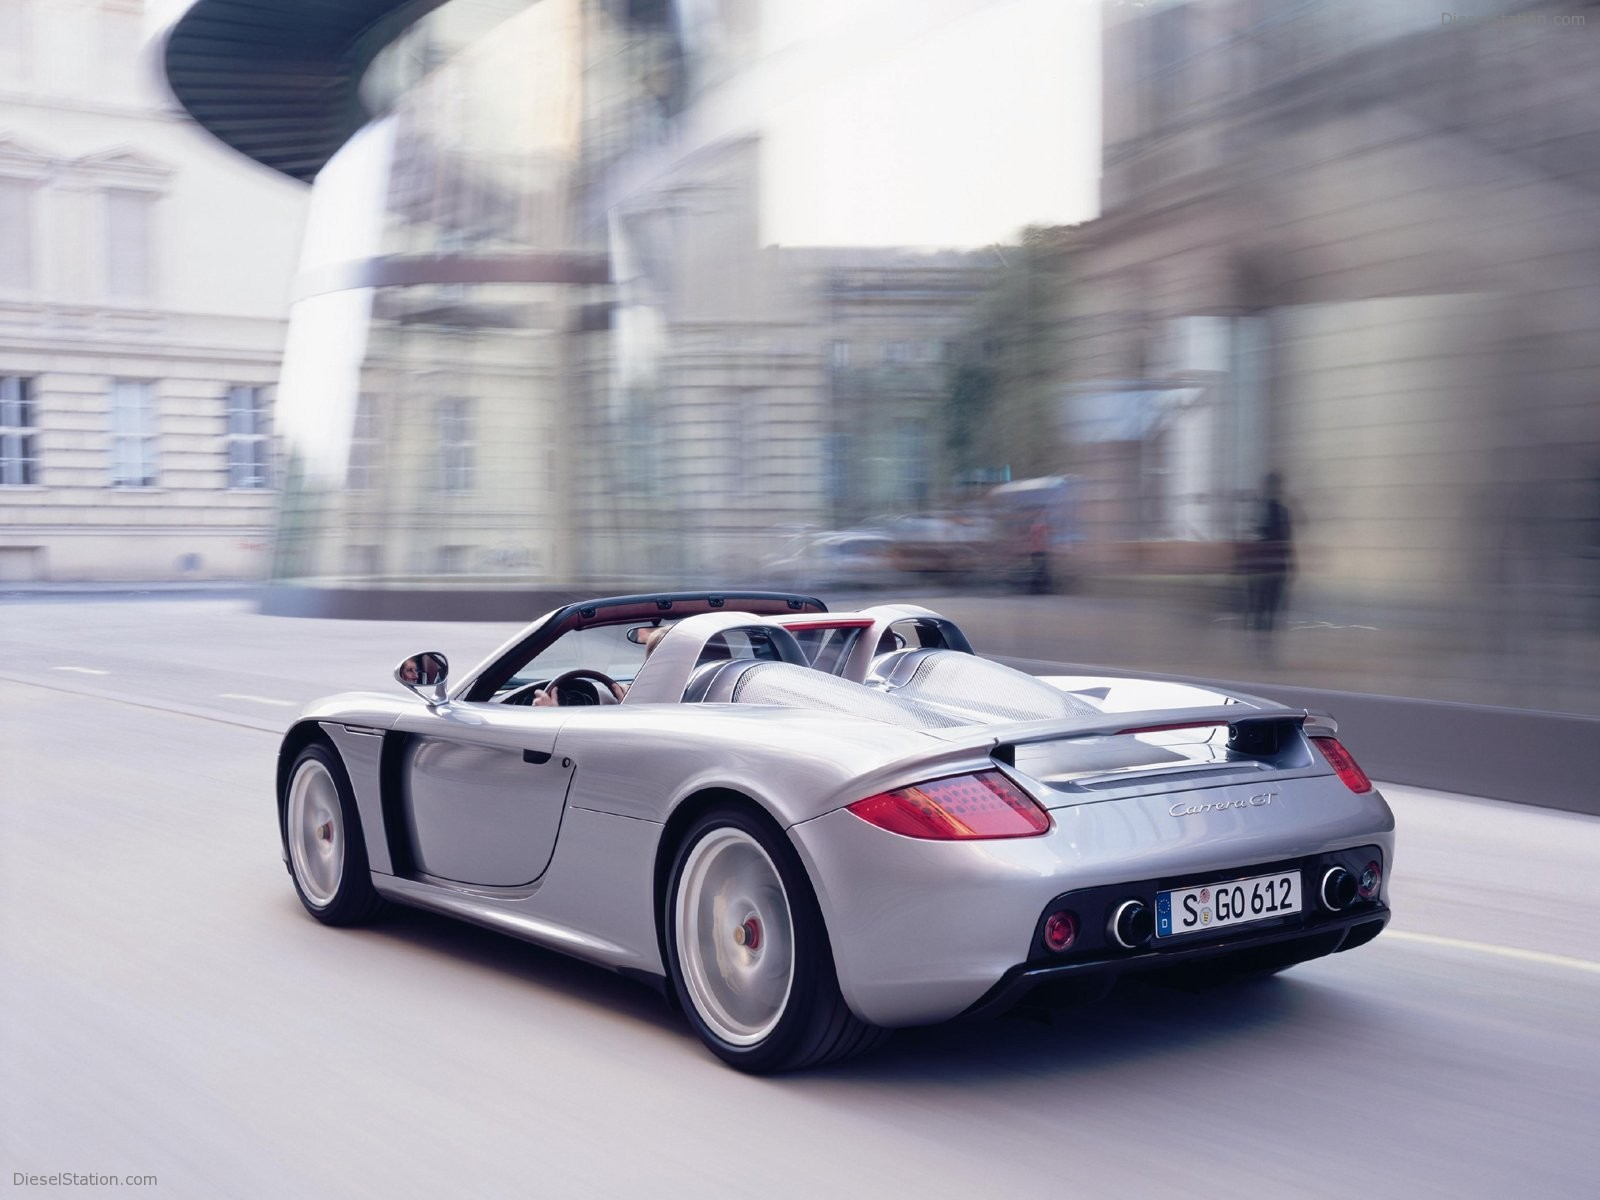 The top ten supercar 7 10 is the porsche carrera gt this powerful car is special because it was porsche s attemt to make a high speed road legal